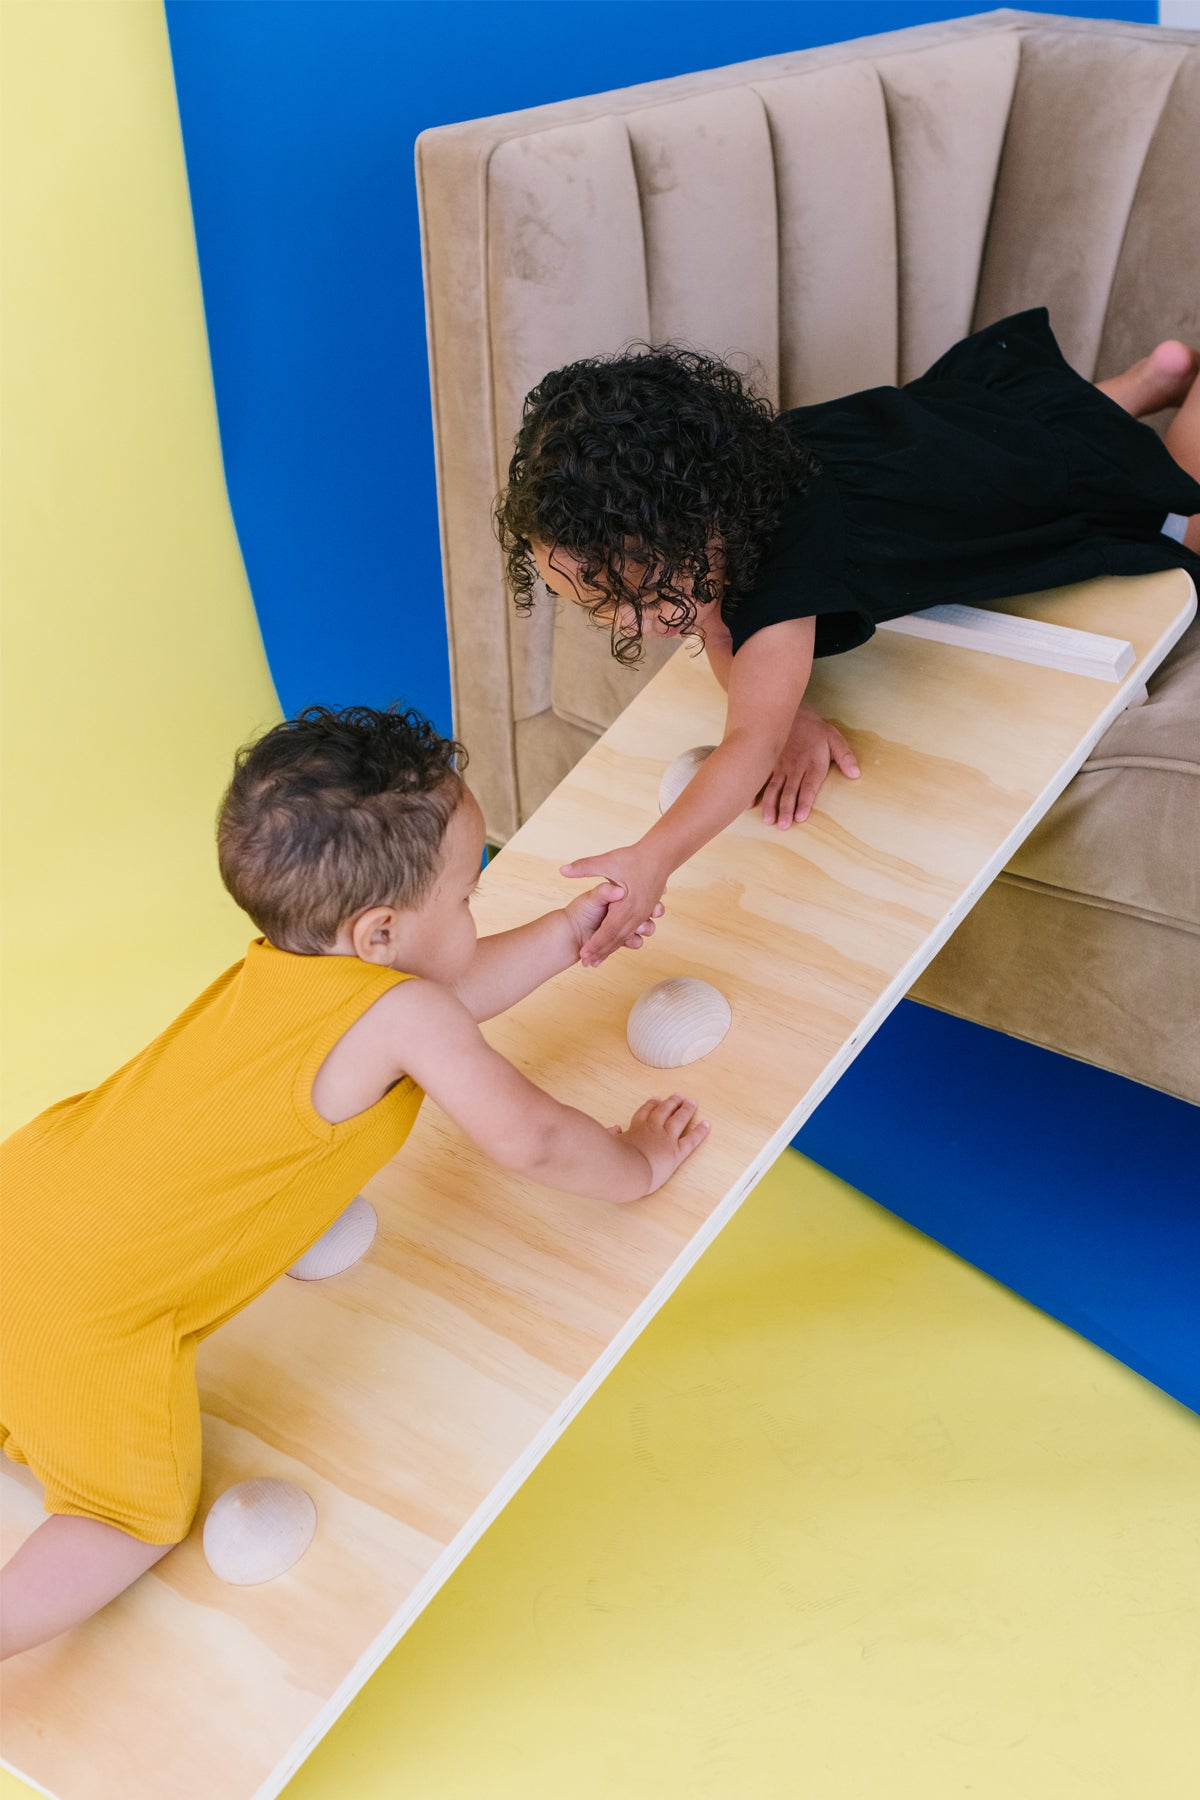 The Pikler Couch Slide and Climbing Wall